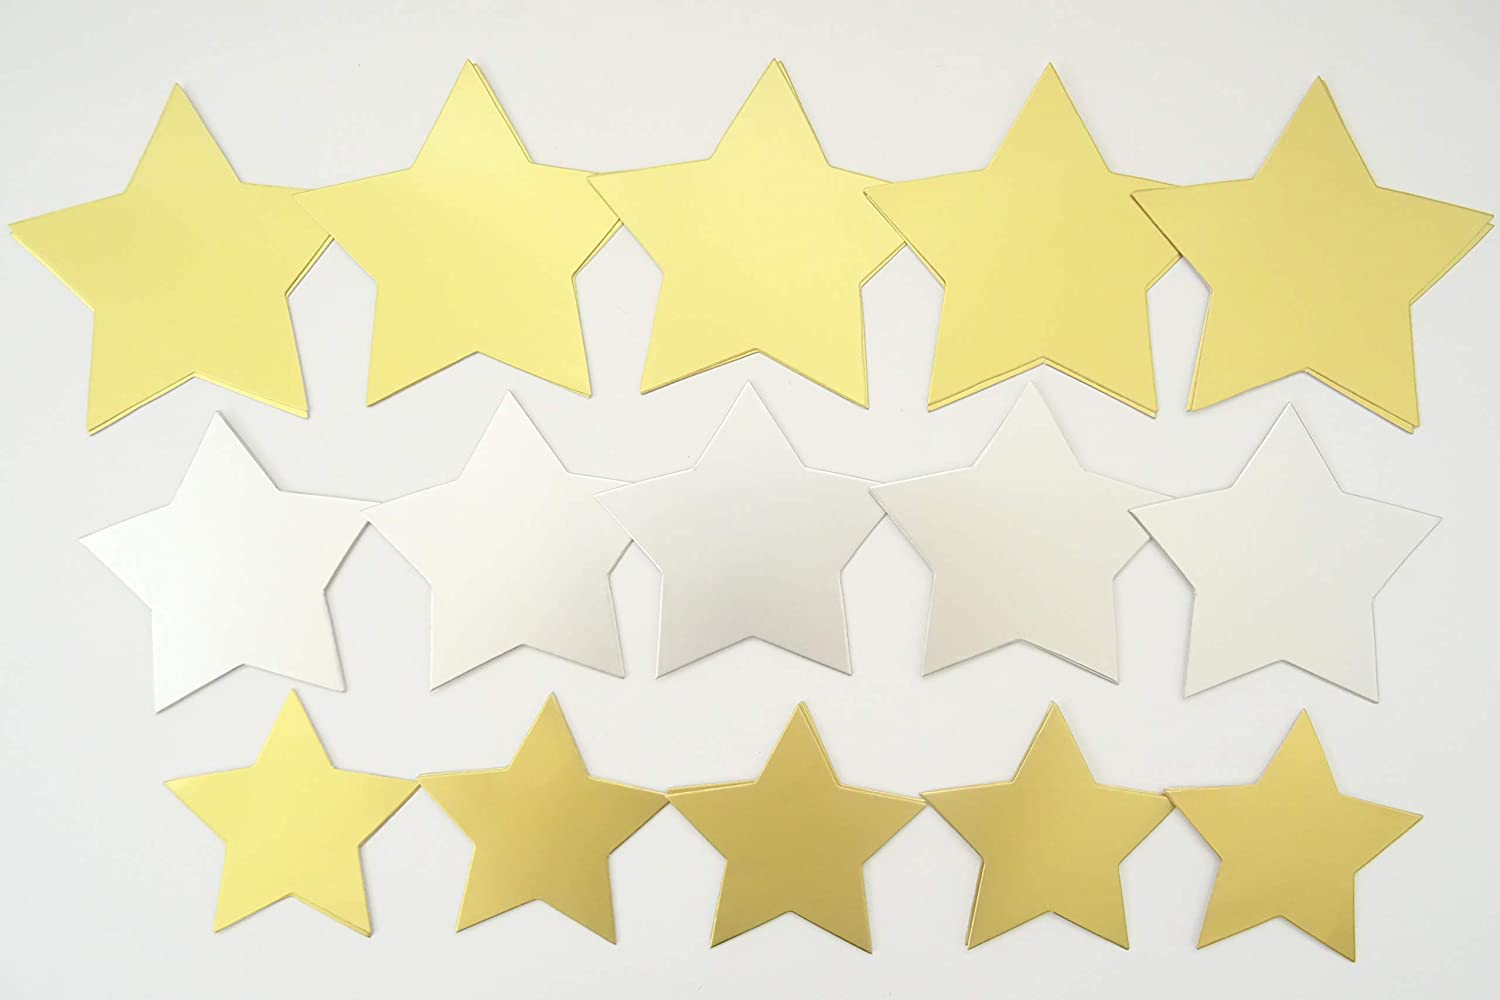 100 x Large Gold /& Silver Card Stars Gift Tags Badges Decorations 3 Sizes